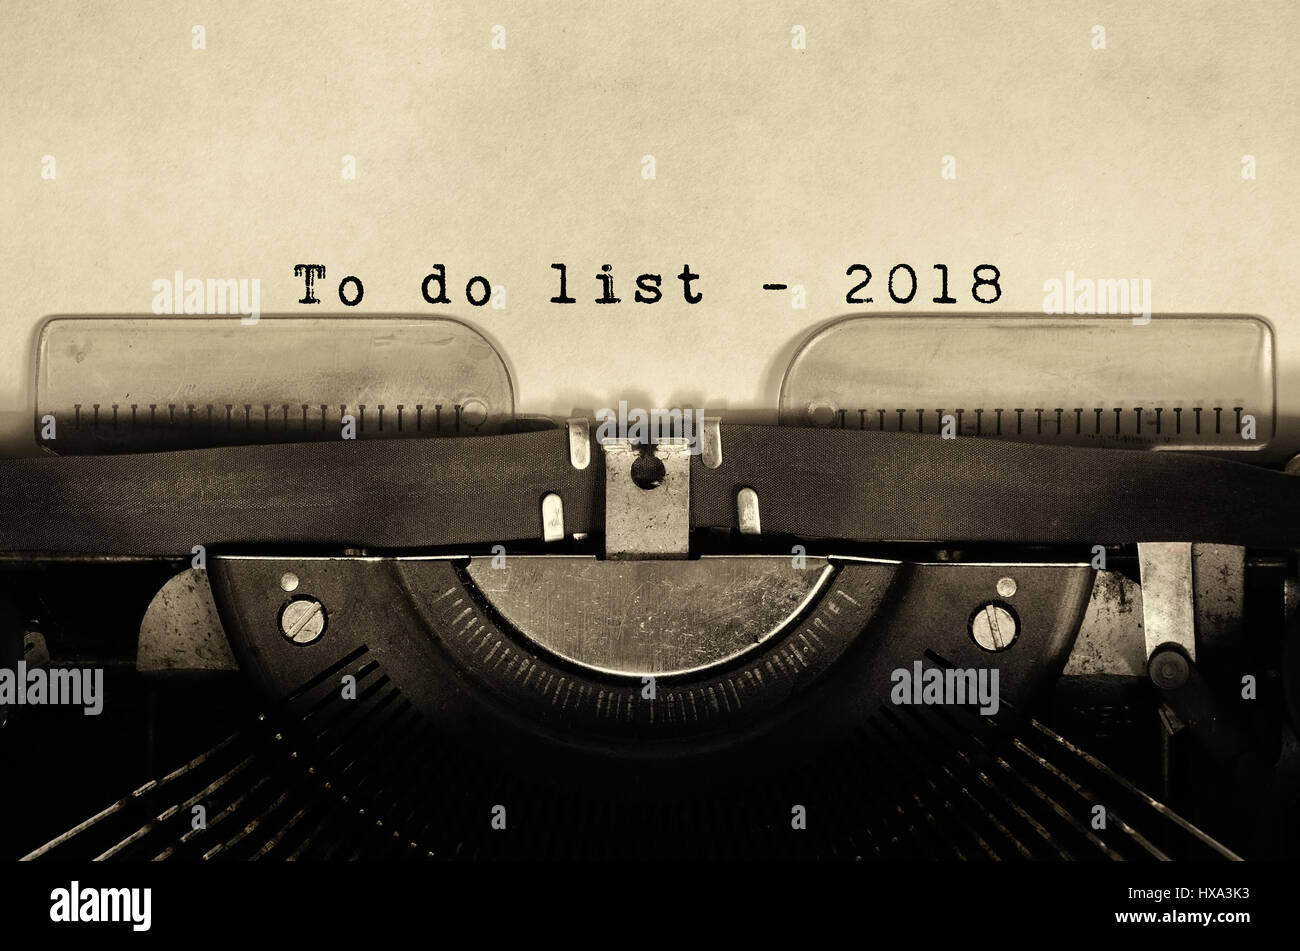 To do list 2018 words typed on vintage typewriter. - Stock Image